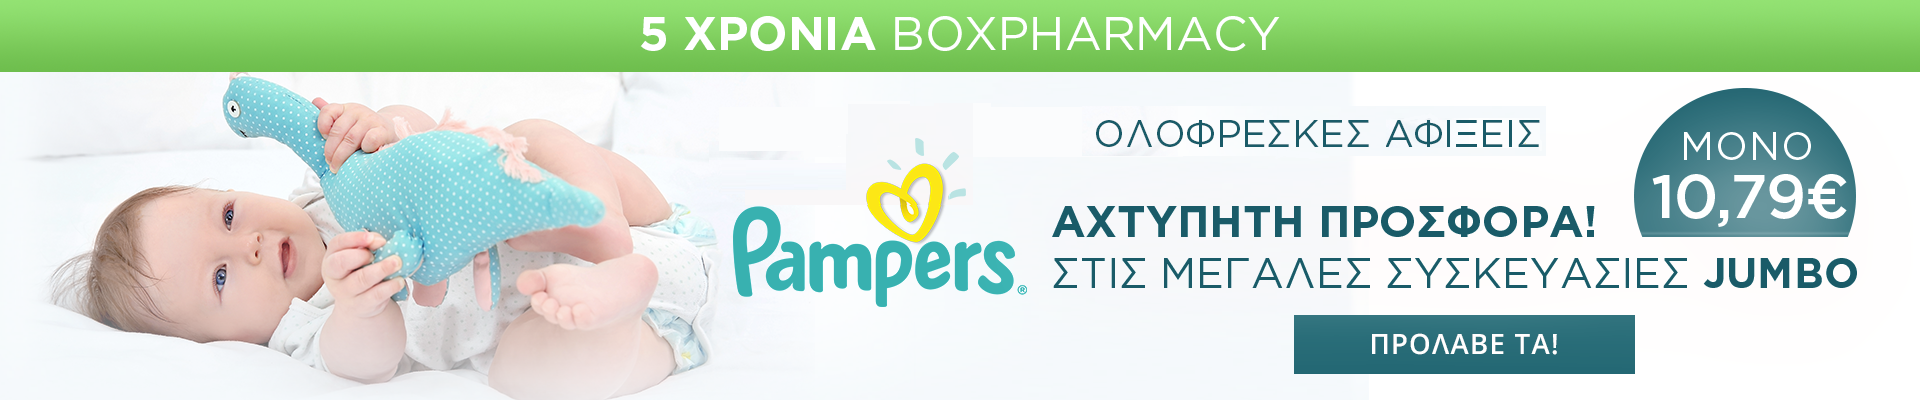 Pampers -40% (5 xronia) 8/11/18